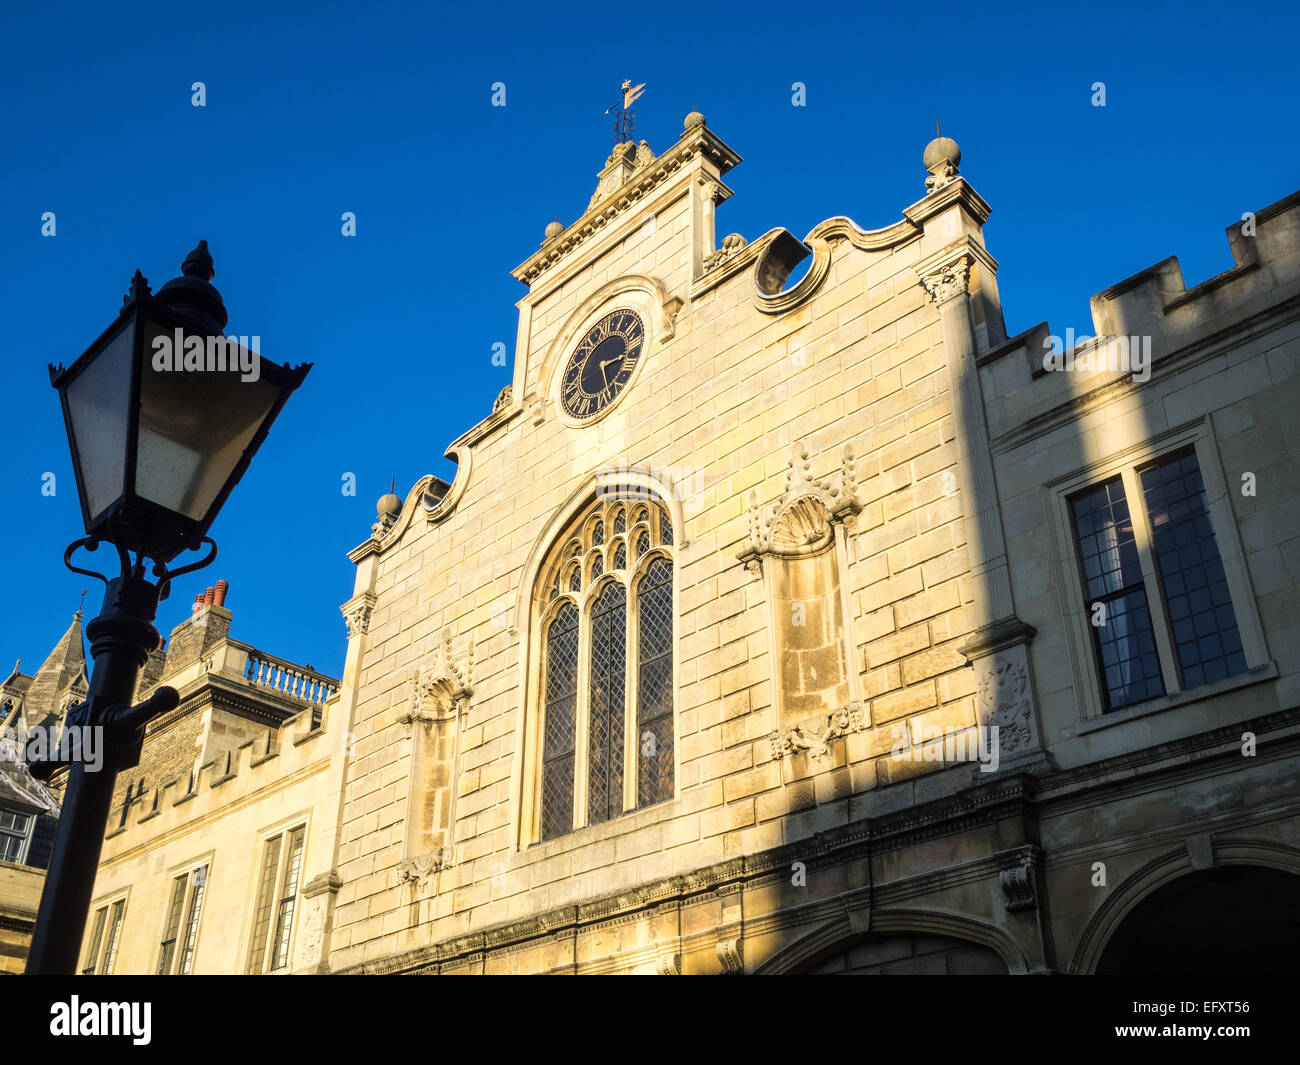 The Clock tower, Peterhouse College, University of Cambridge, UK - Stock Image